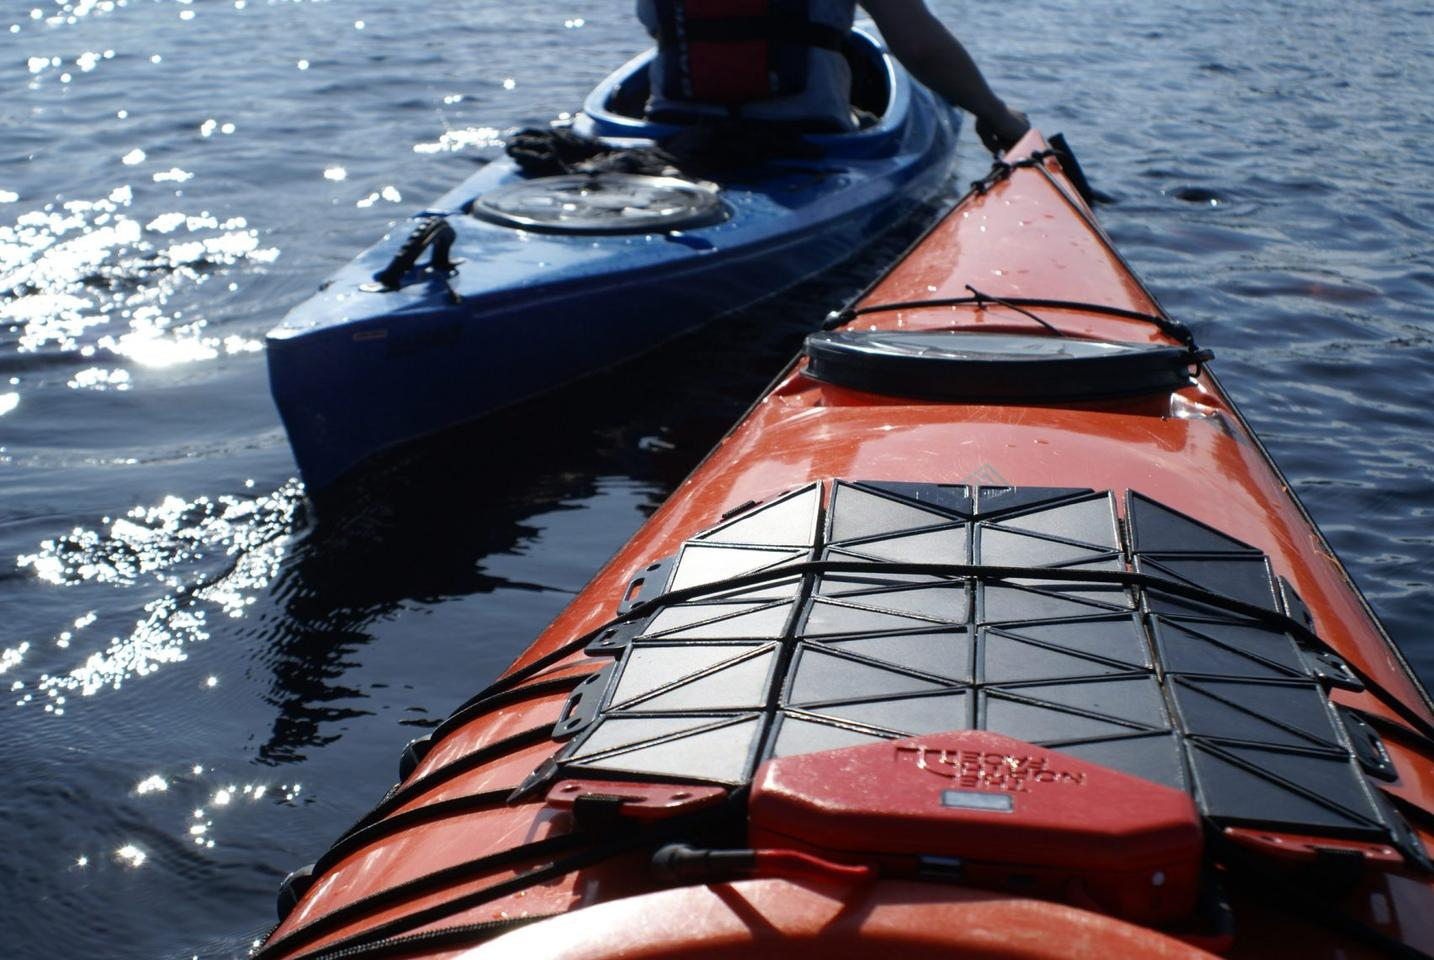 The SunUp solar panel could be ideal for outdoor activities such as kayaking